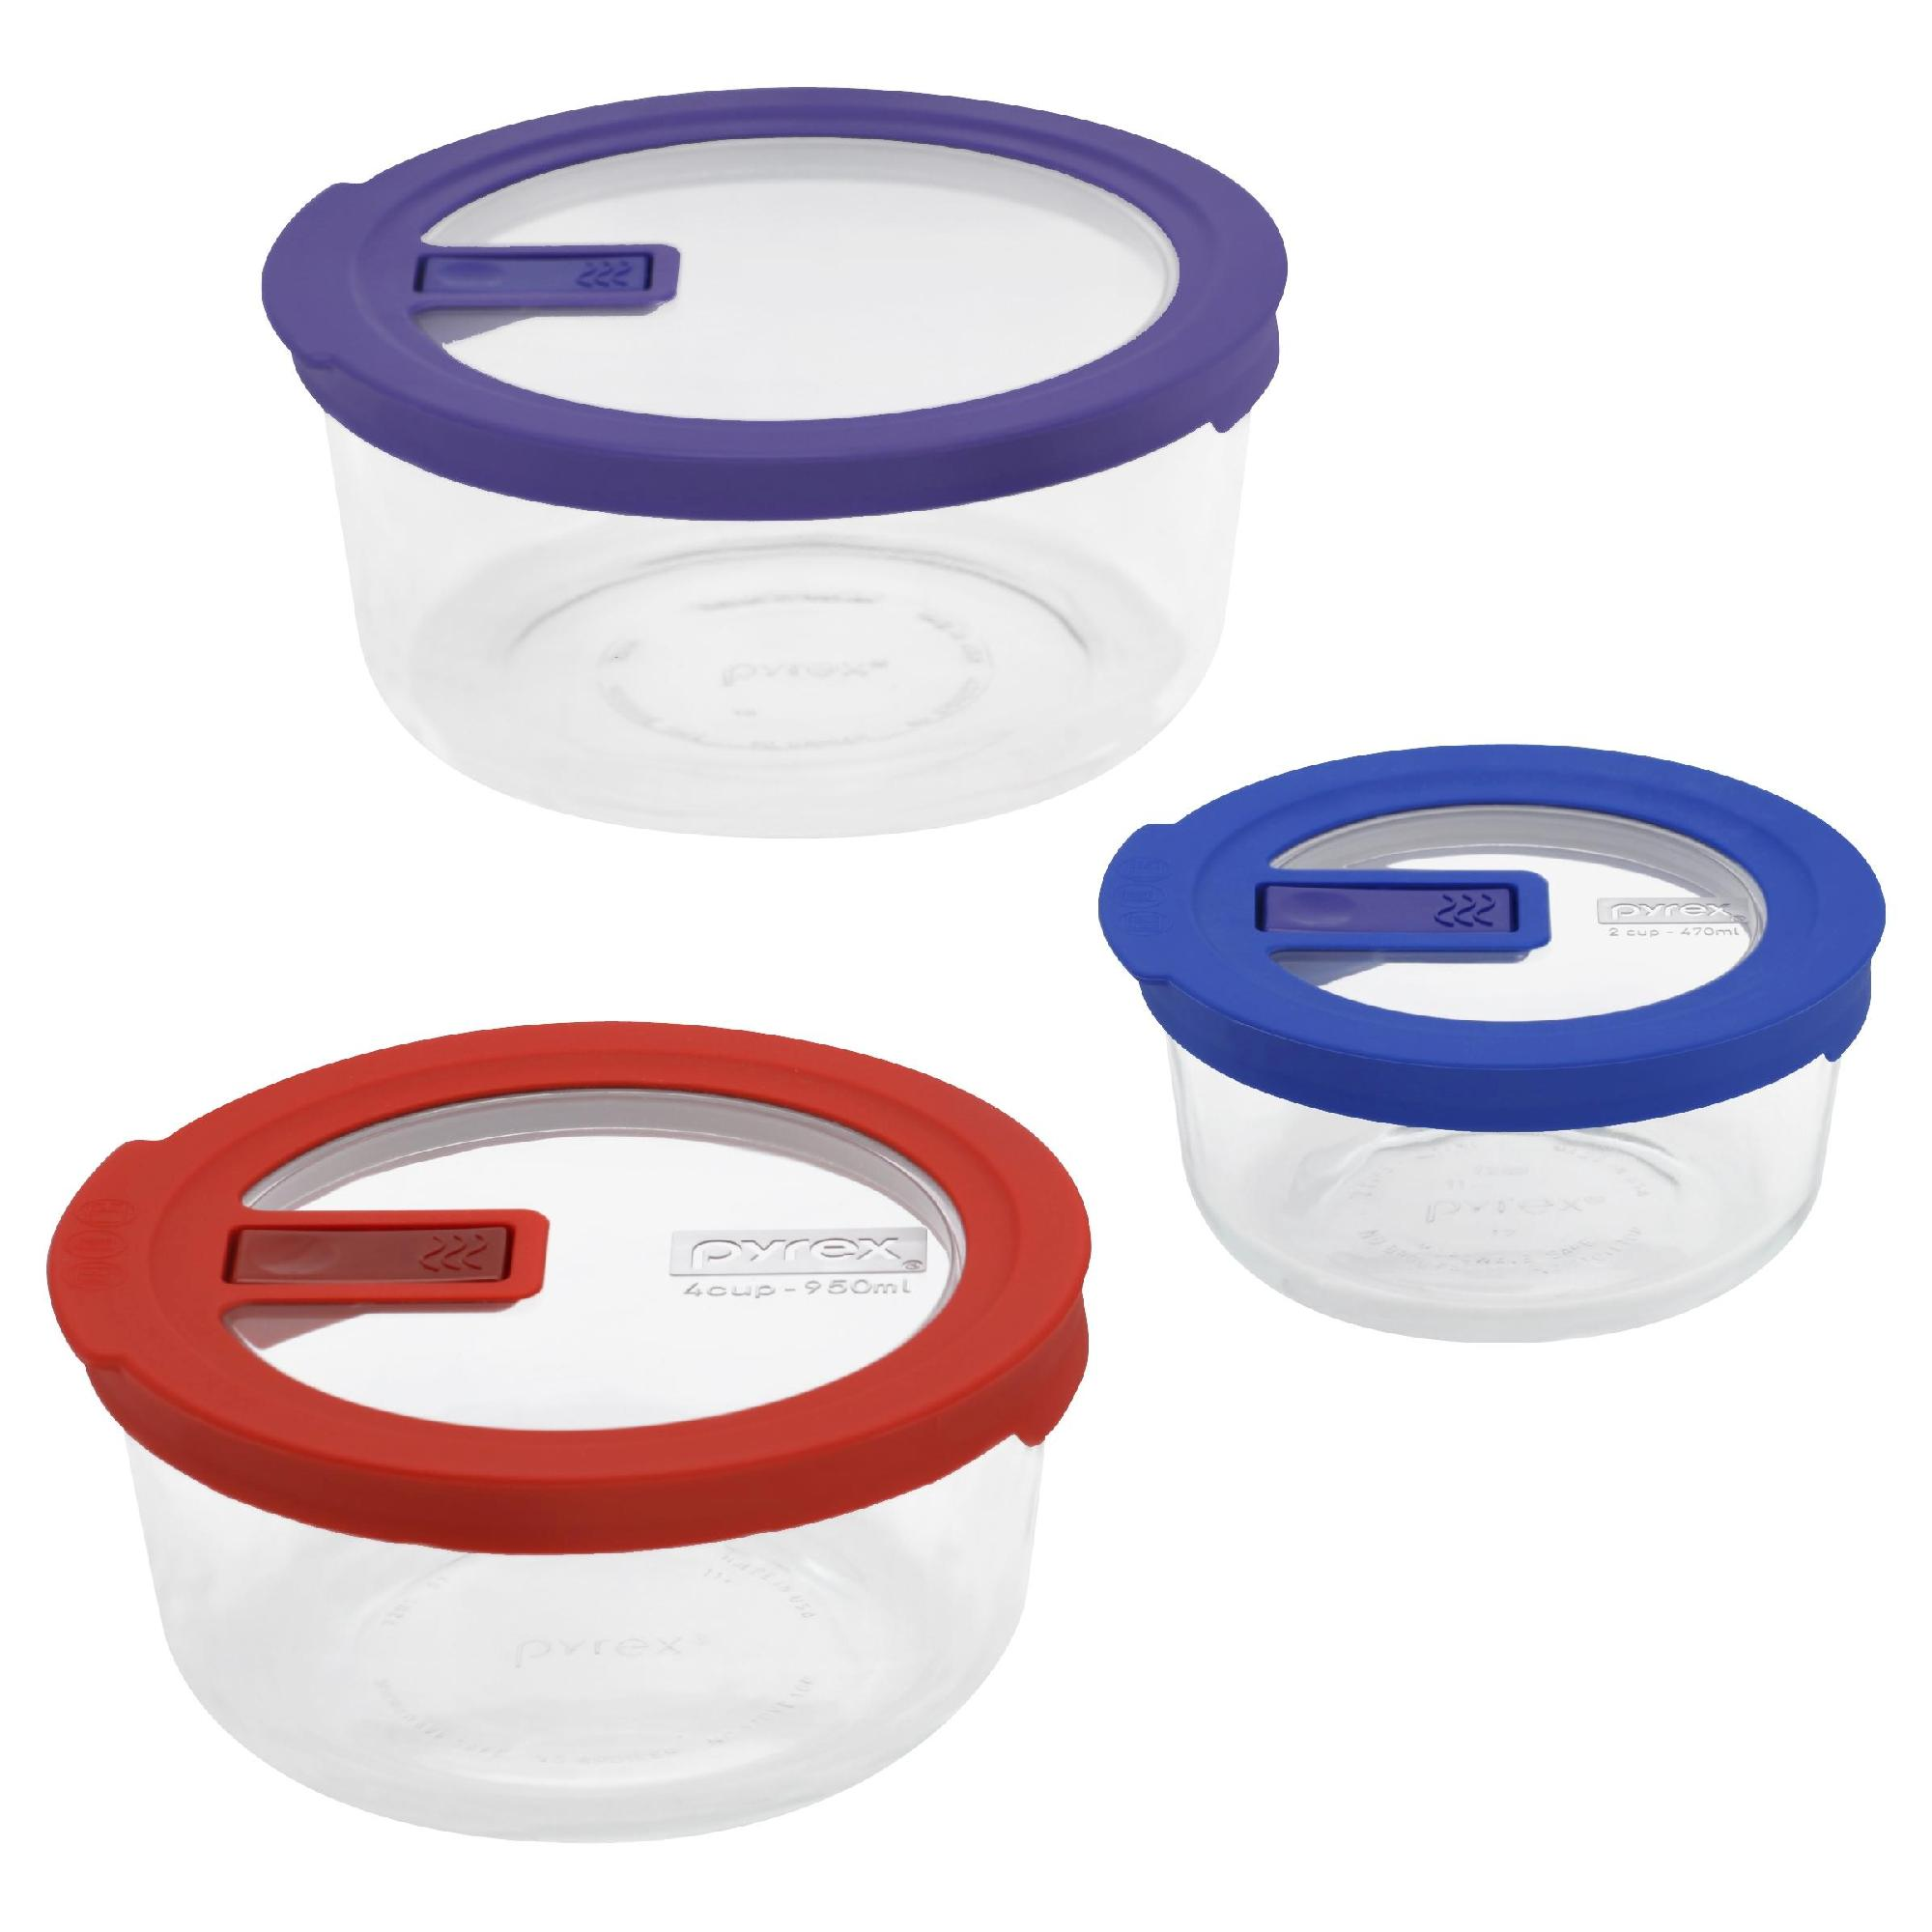 No Leak Lid Storage Containers - 6 Piece